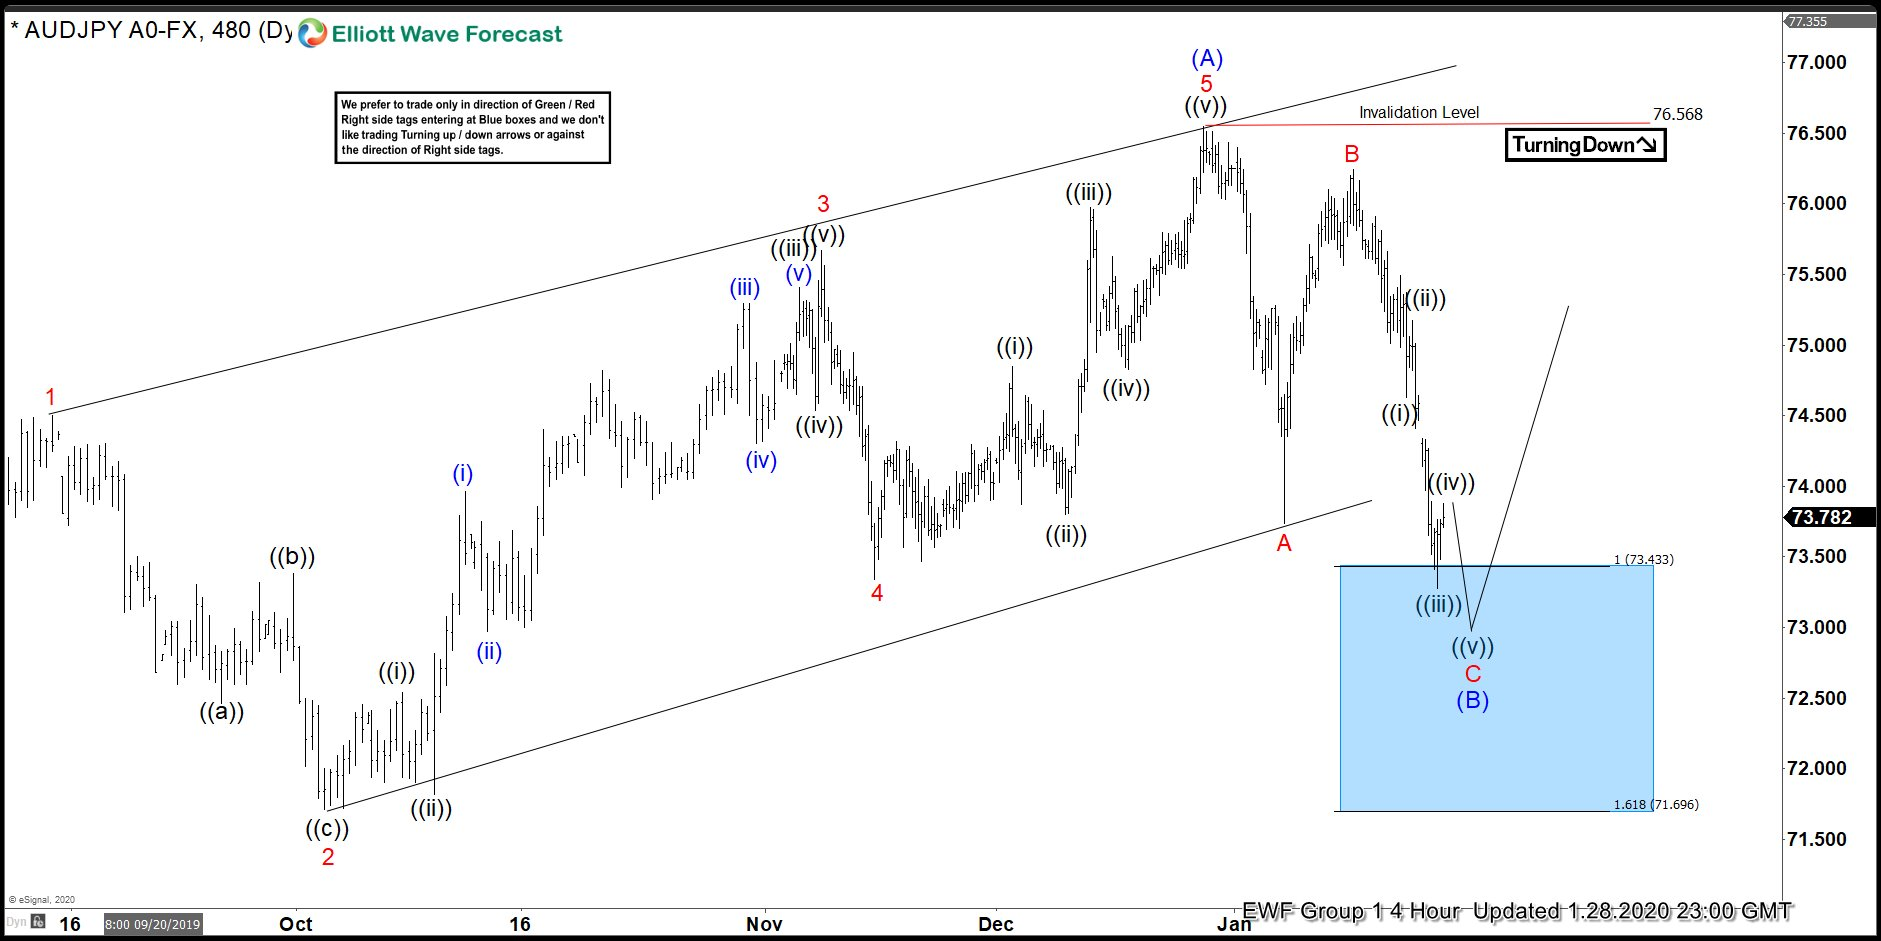 AUDJPY Forecasting The Bounce From The Blue Box Area